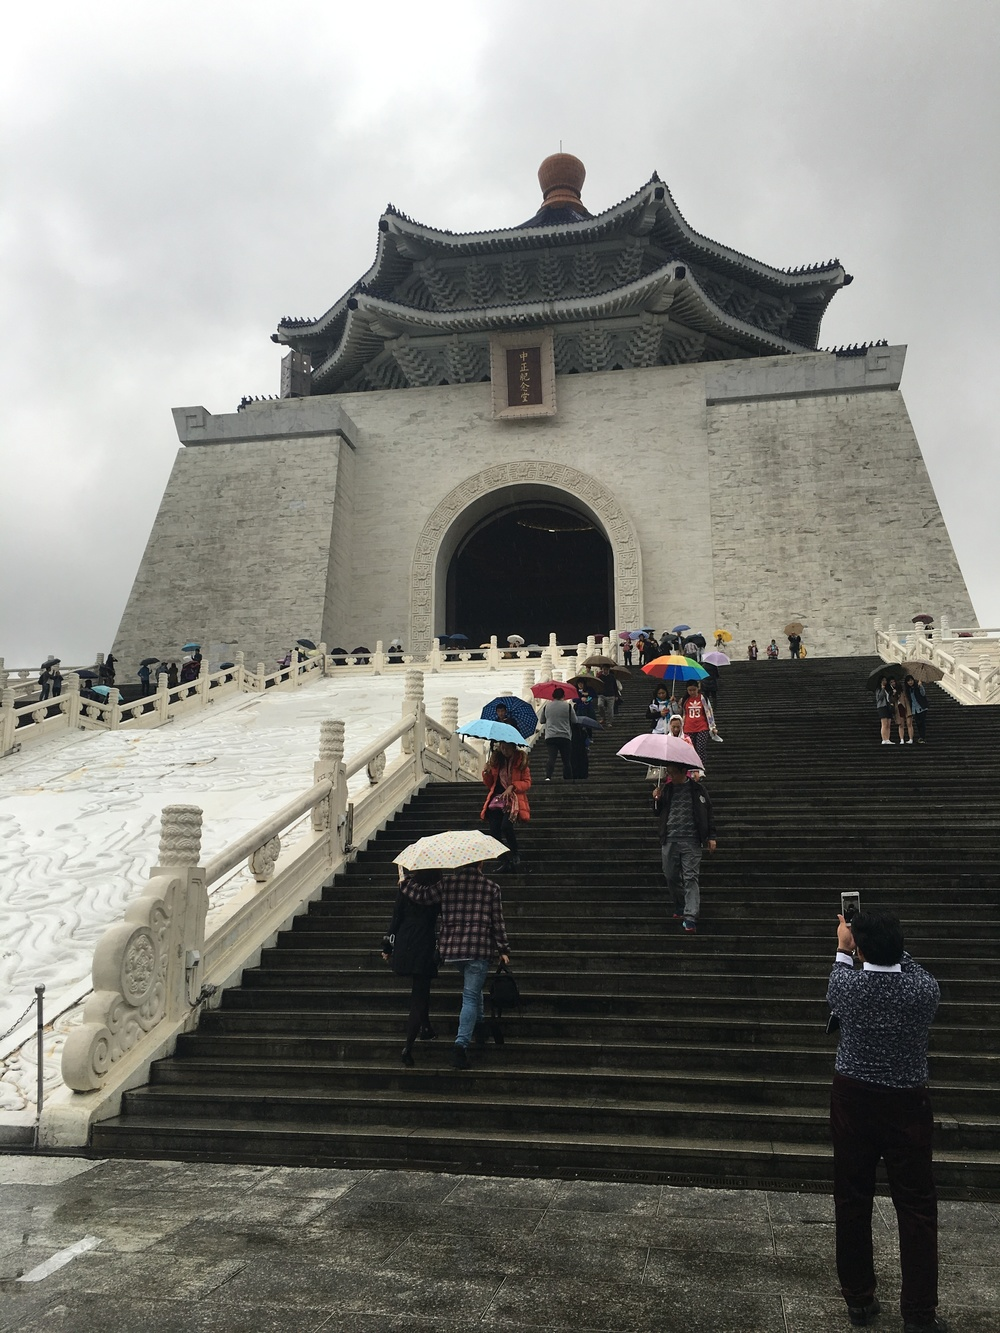 Chang Kai Shek memorial